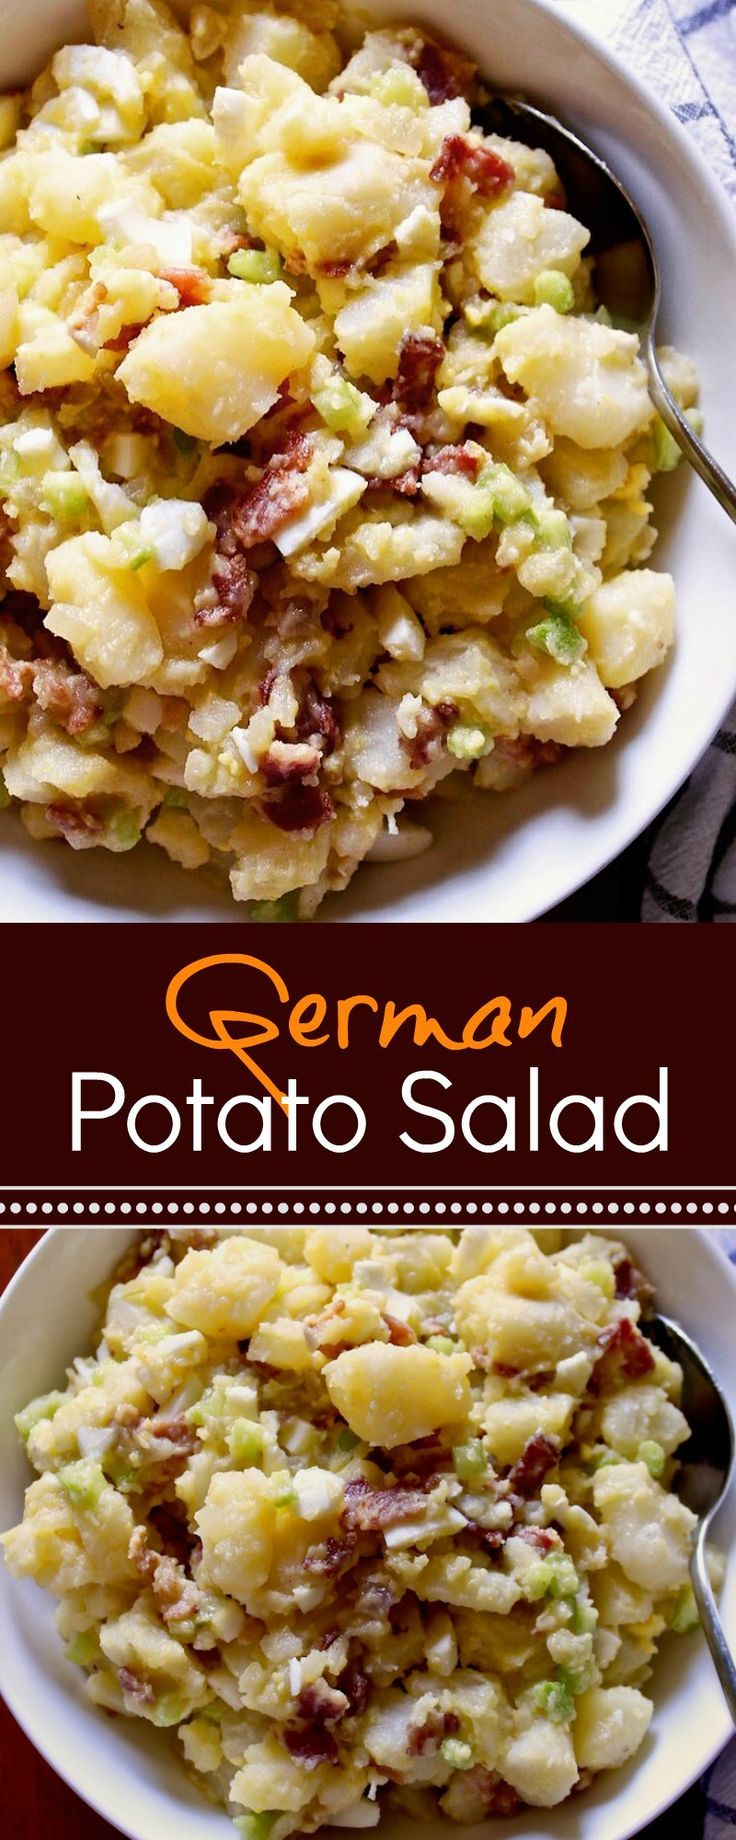 German potato salad with sweet and tangy dressing made with pickle juice. #potatosalad #sidess